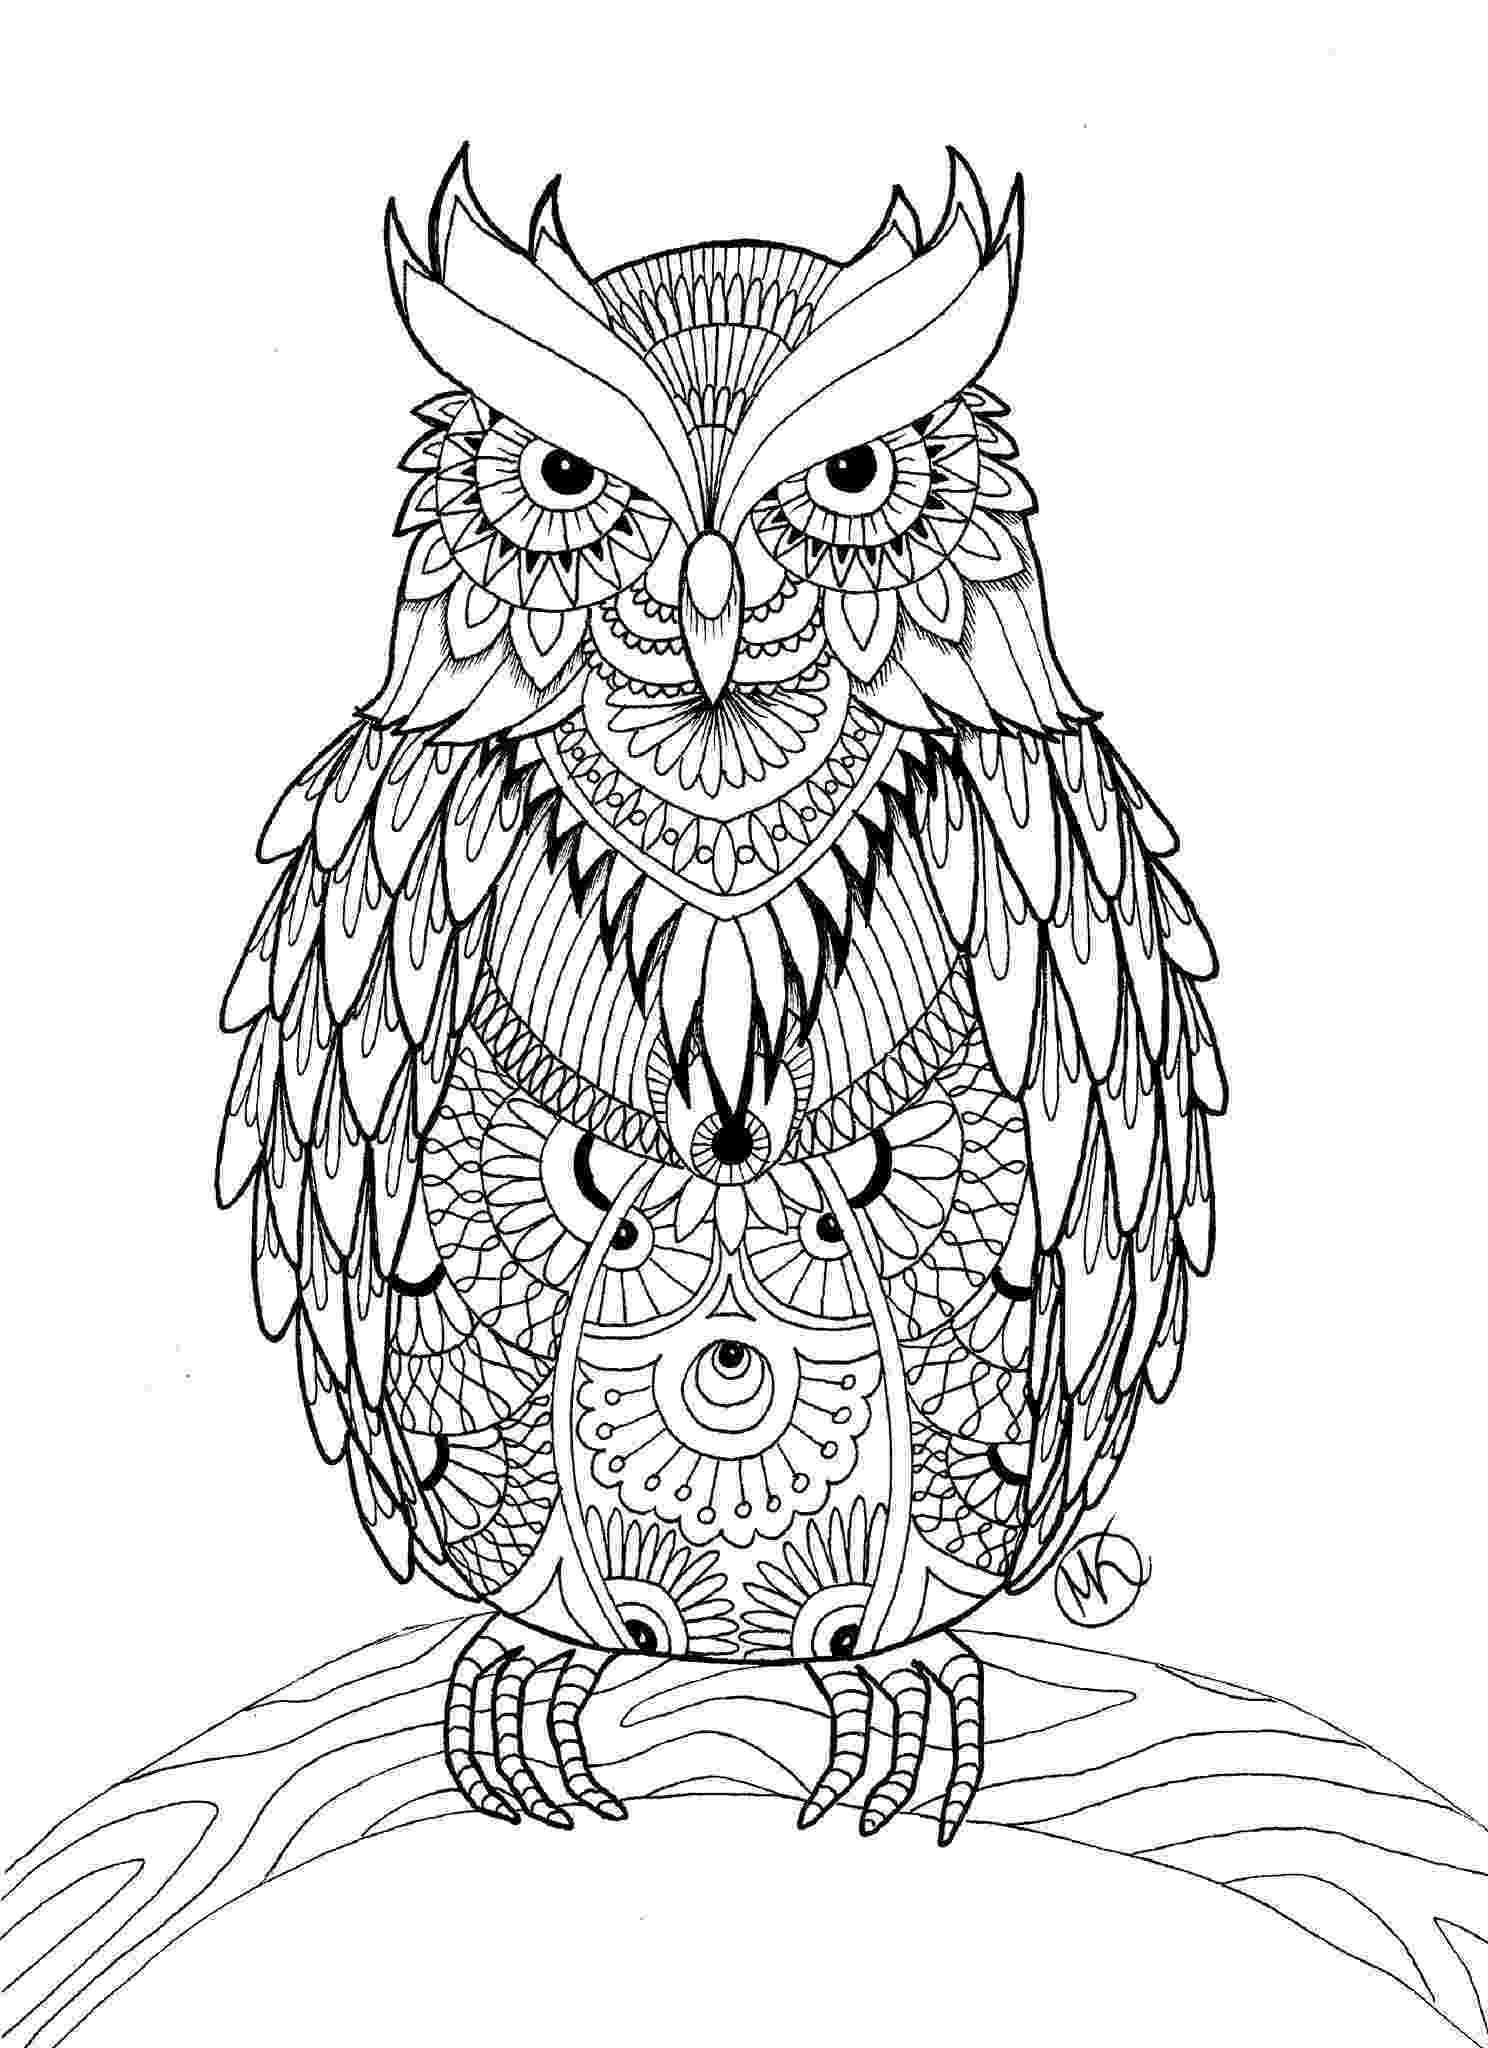 free printable coloring for adults owl coloring pages for adults free detailed owl coloring adults coloring printable for free